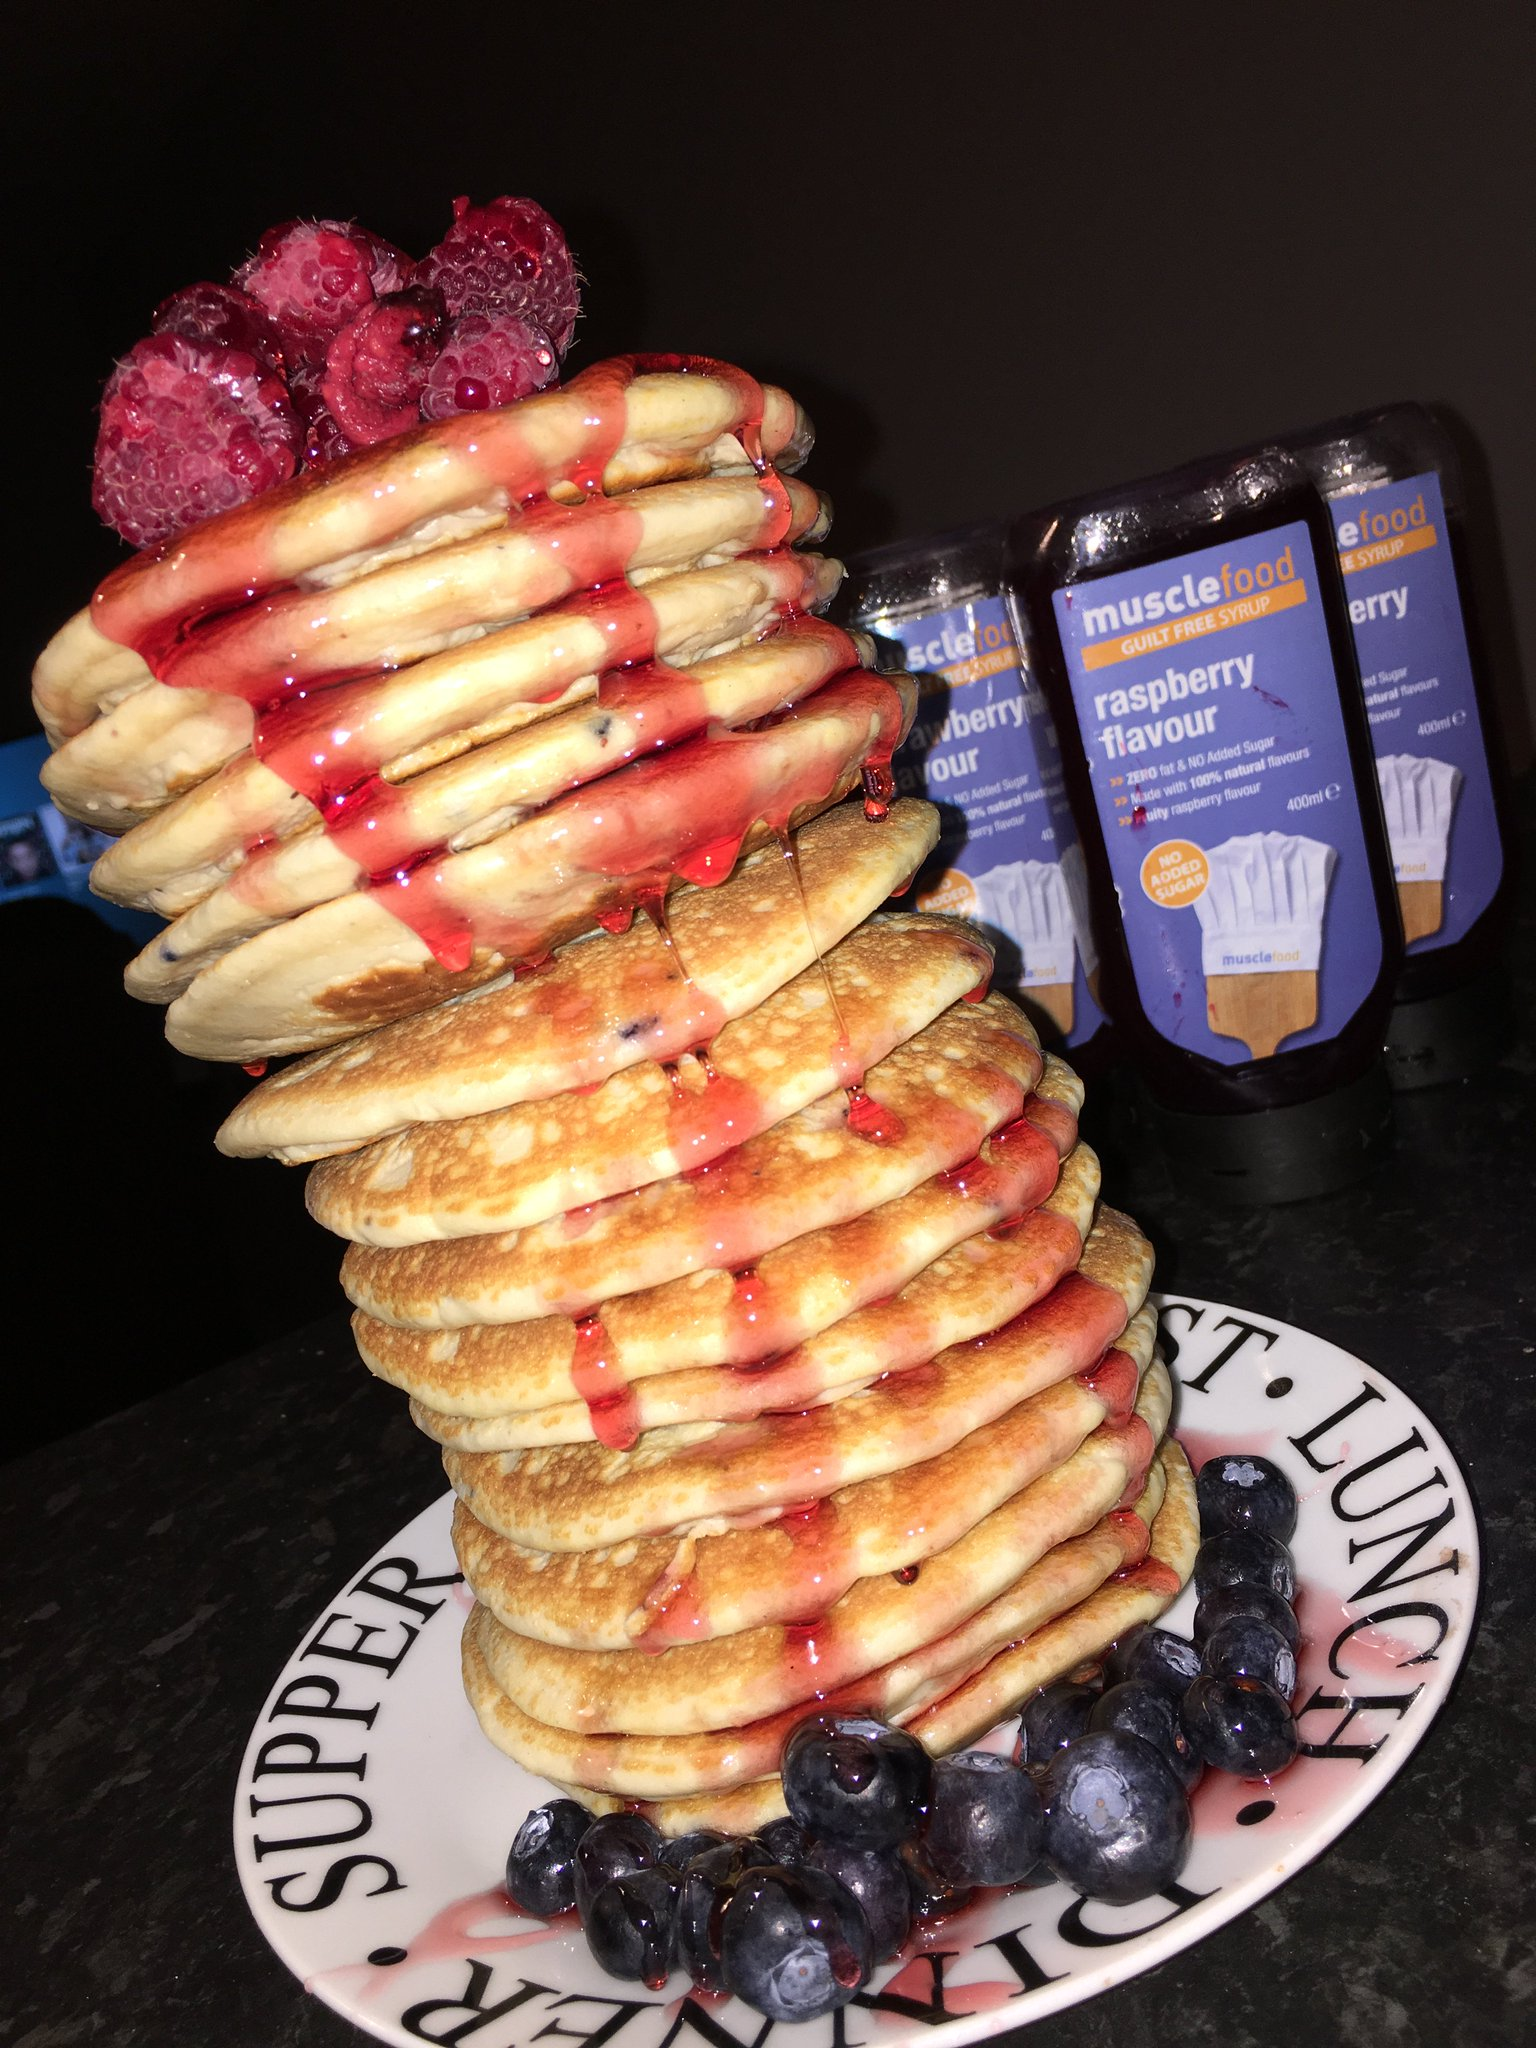 RT @MuscleFoodUK: You've still got time to order our READY MADE Protein Pancakes for delivery tomorrow! https://t.co/sKYogCIhOi https://t.c…